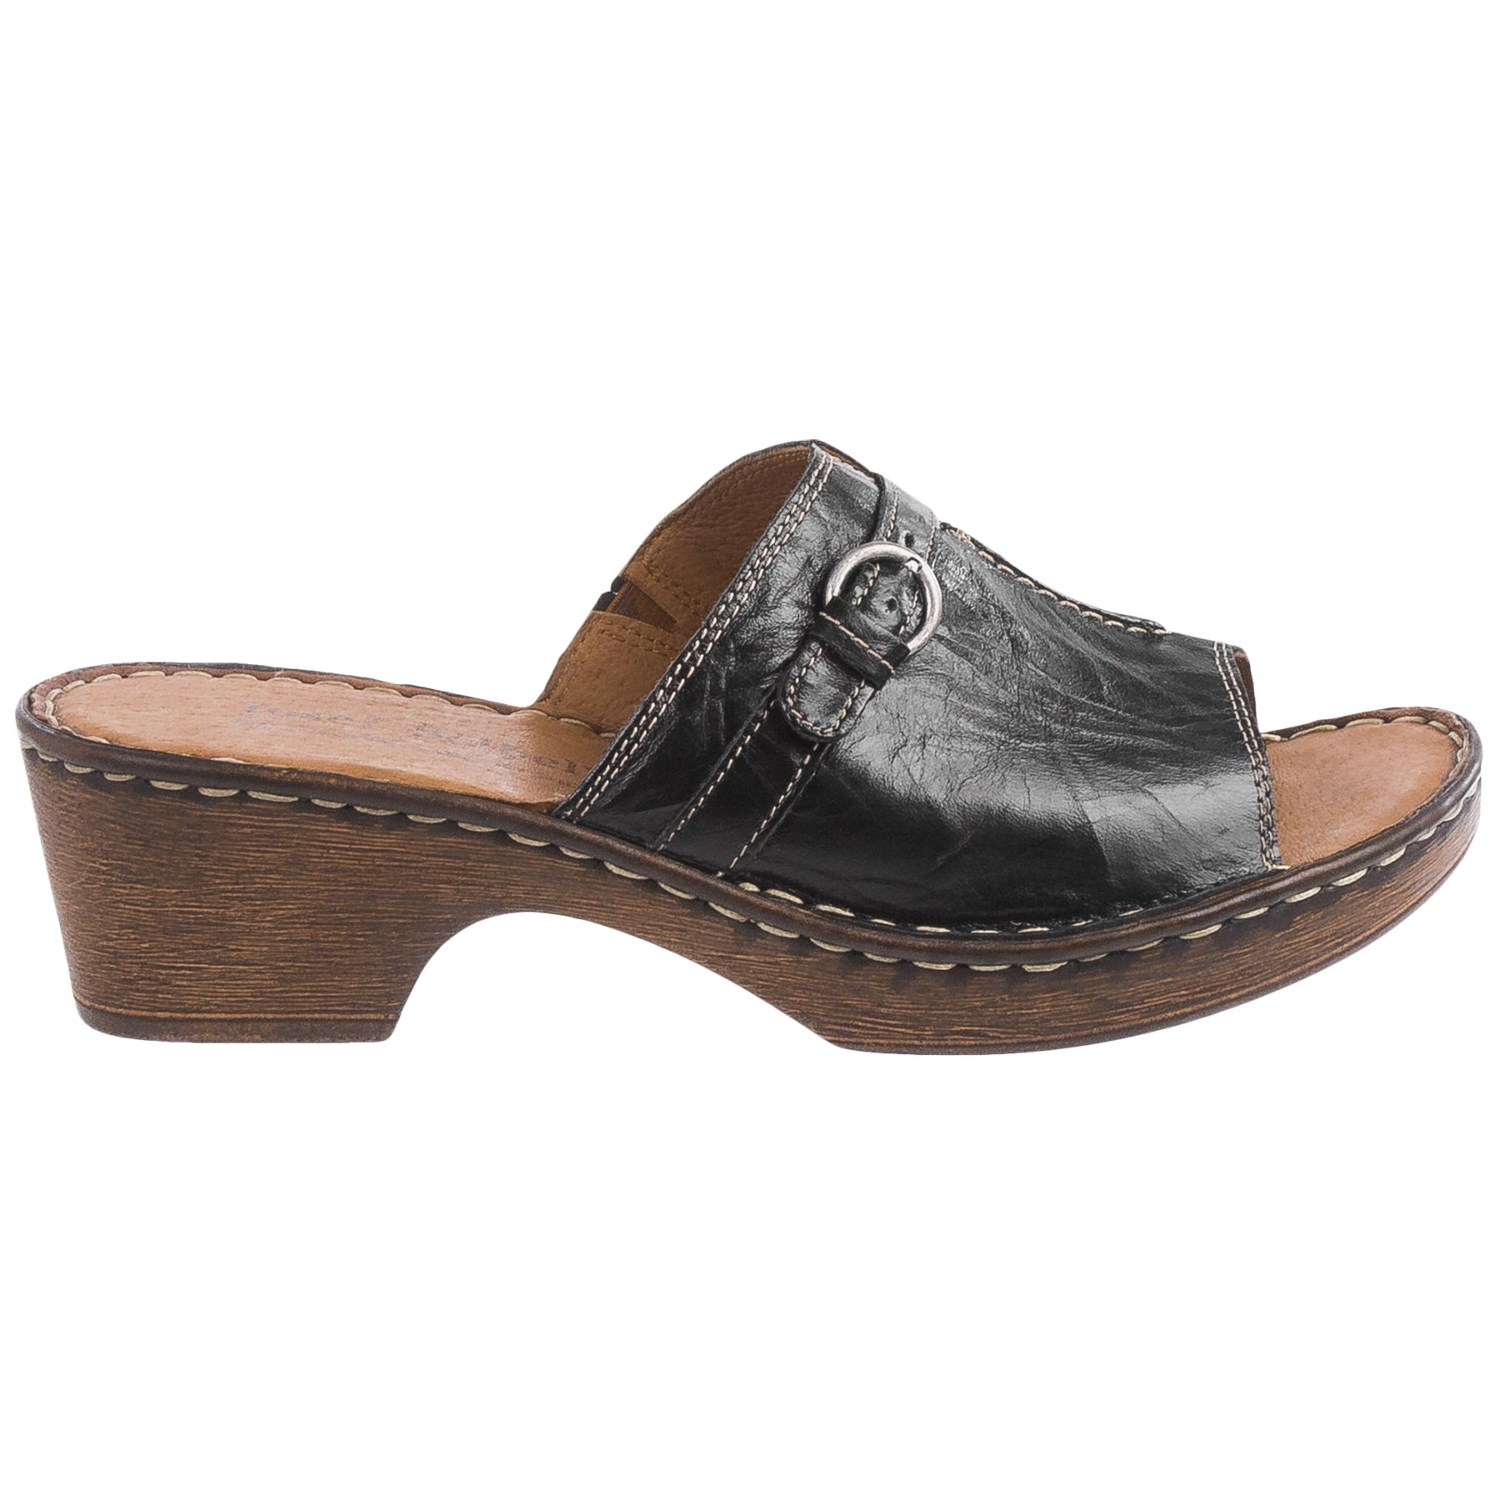 josef seibel 21 mule shoes for save 68